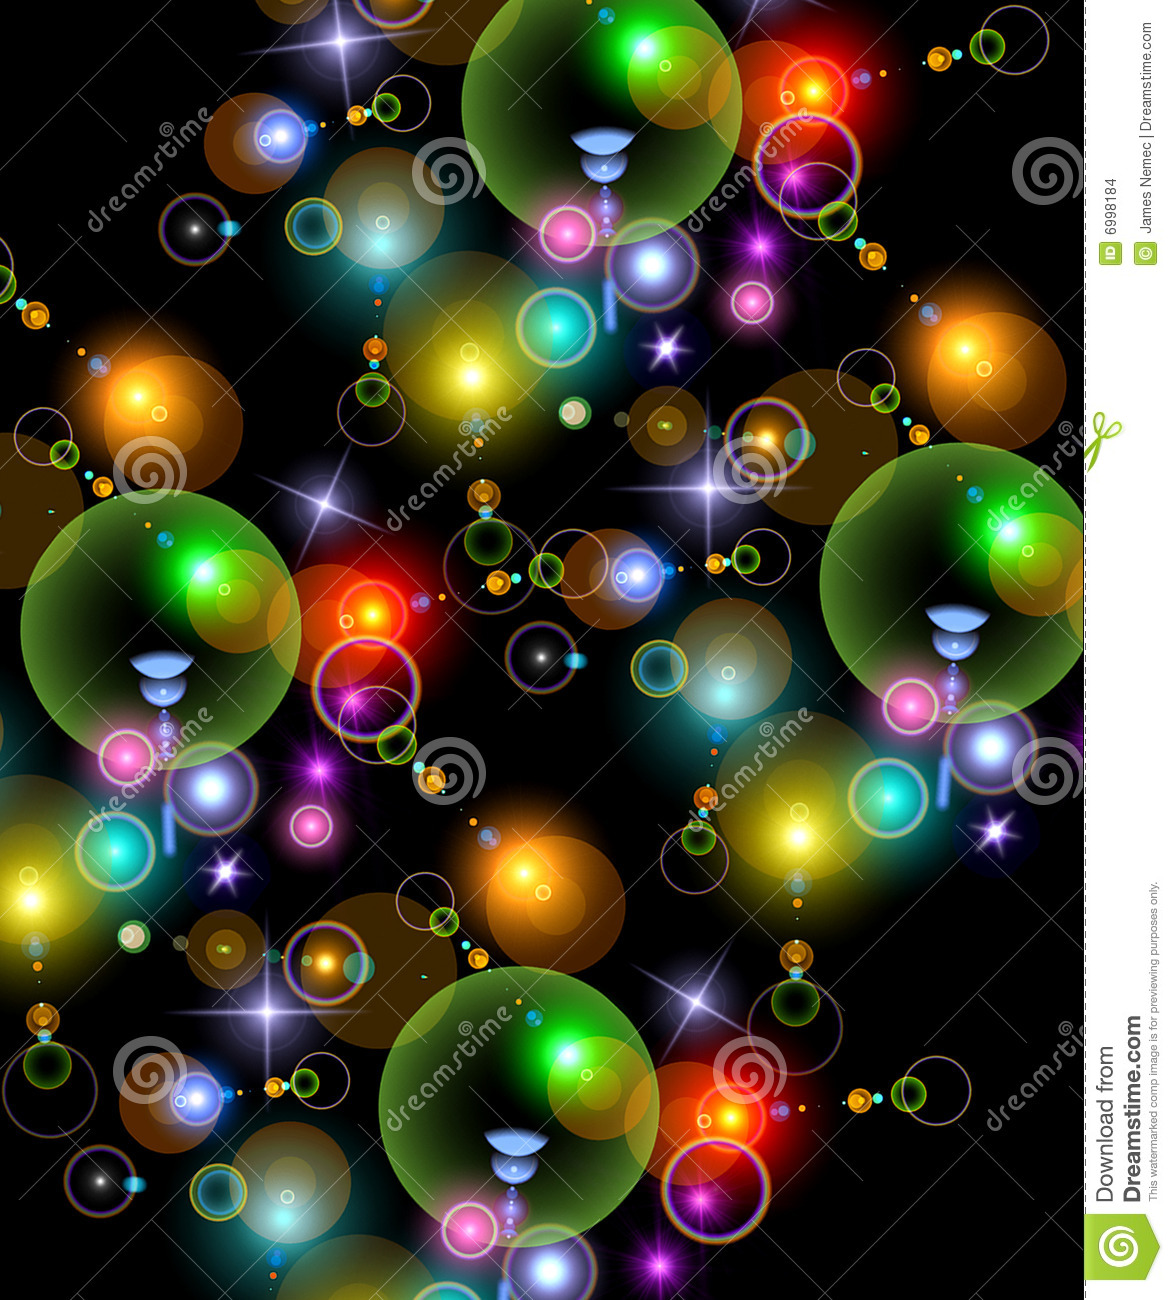 Party lights background stock photo. Image of disco ...